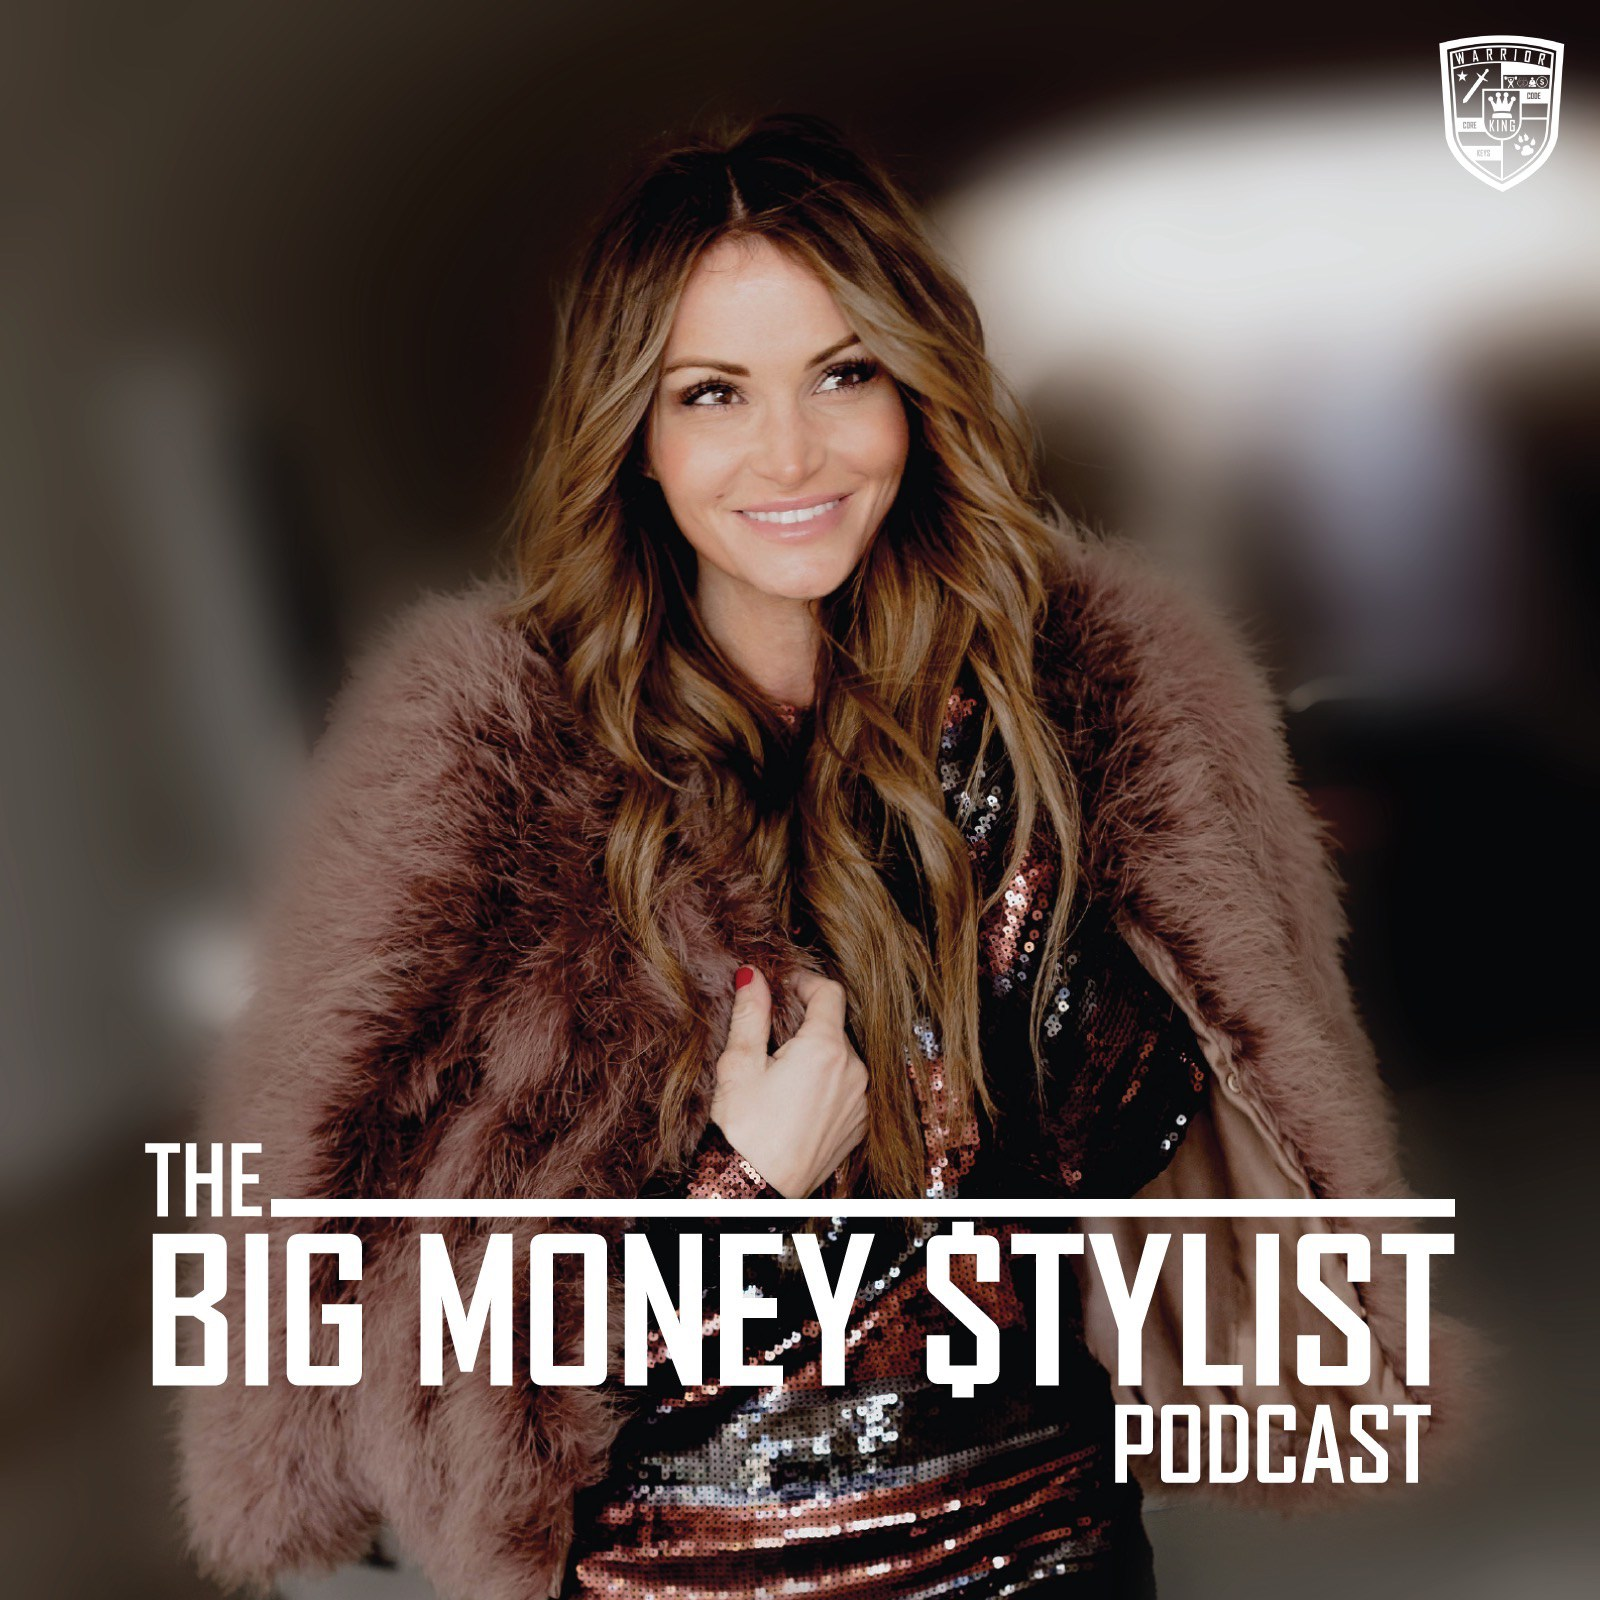 the Big Money Stylist Podcast